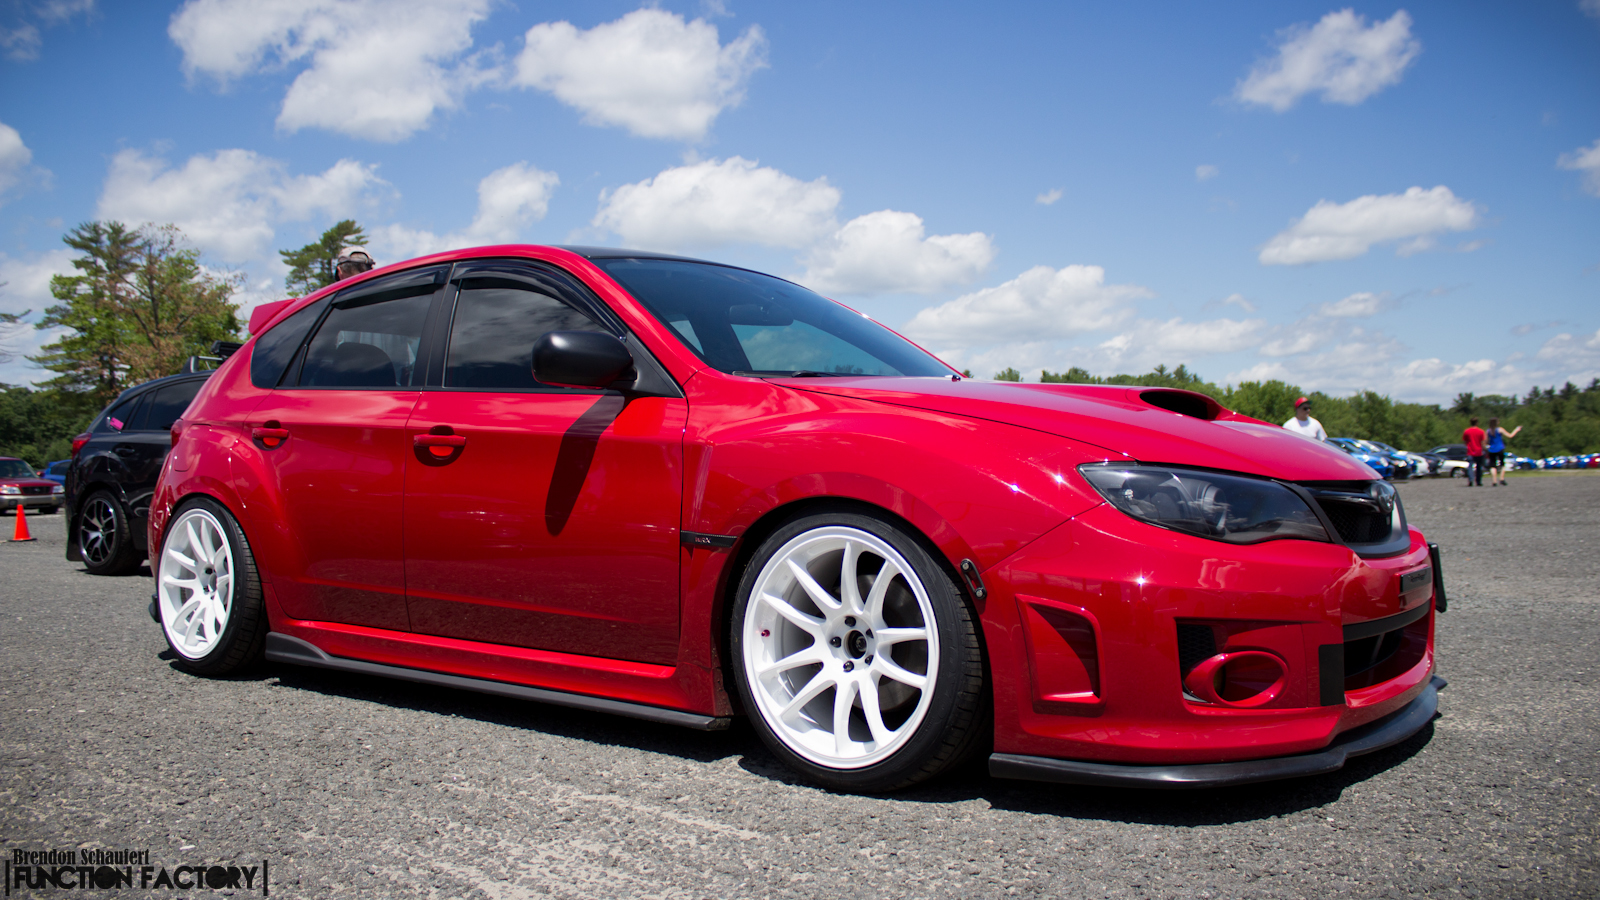 Stanced subaru hatchback image gallery hcpr subaru wrx sti hatchback stanced clean subaru wrx hatch from stanced subaru impreza vanachro Images